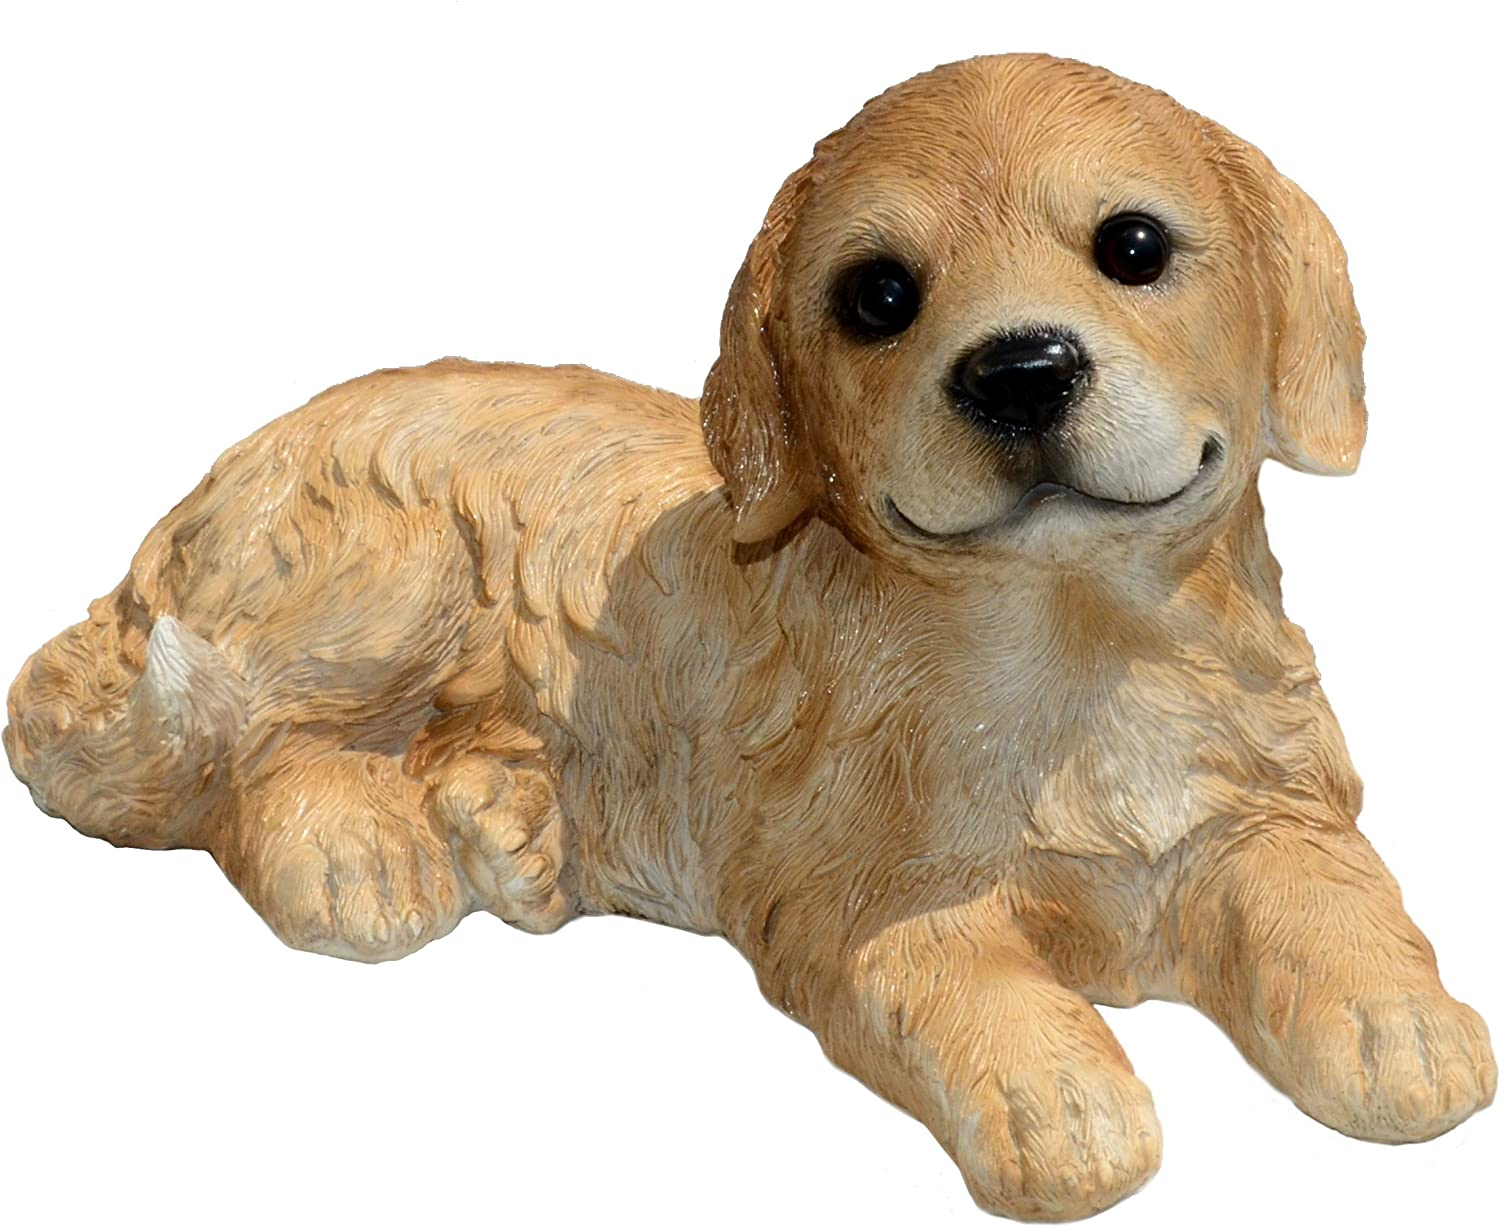 Michael Carr Designs Goldie Retriever Puppy L Outdoor Puppy Dog Figurine for Gardens, patios and lawns (80105)